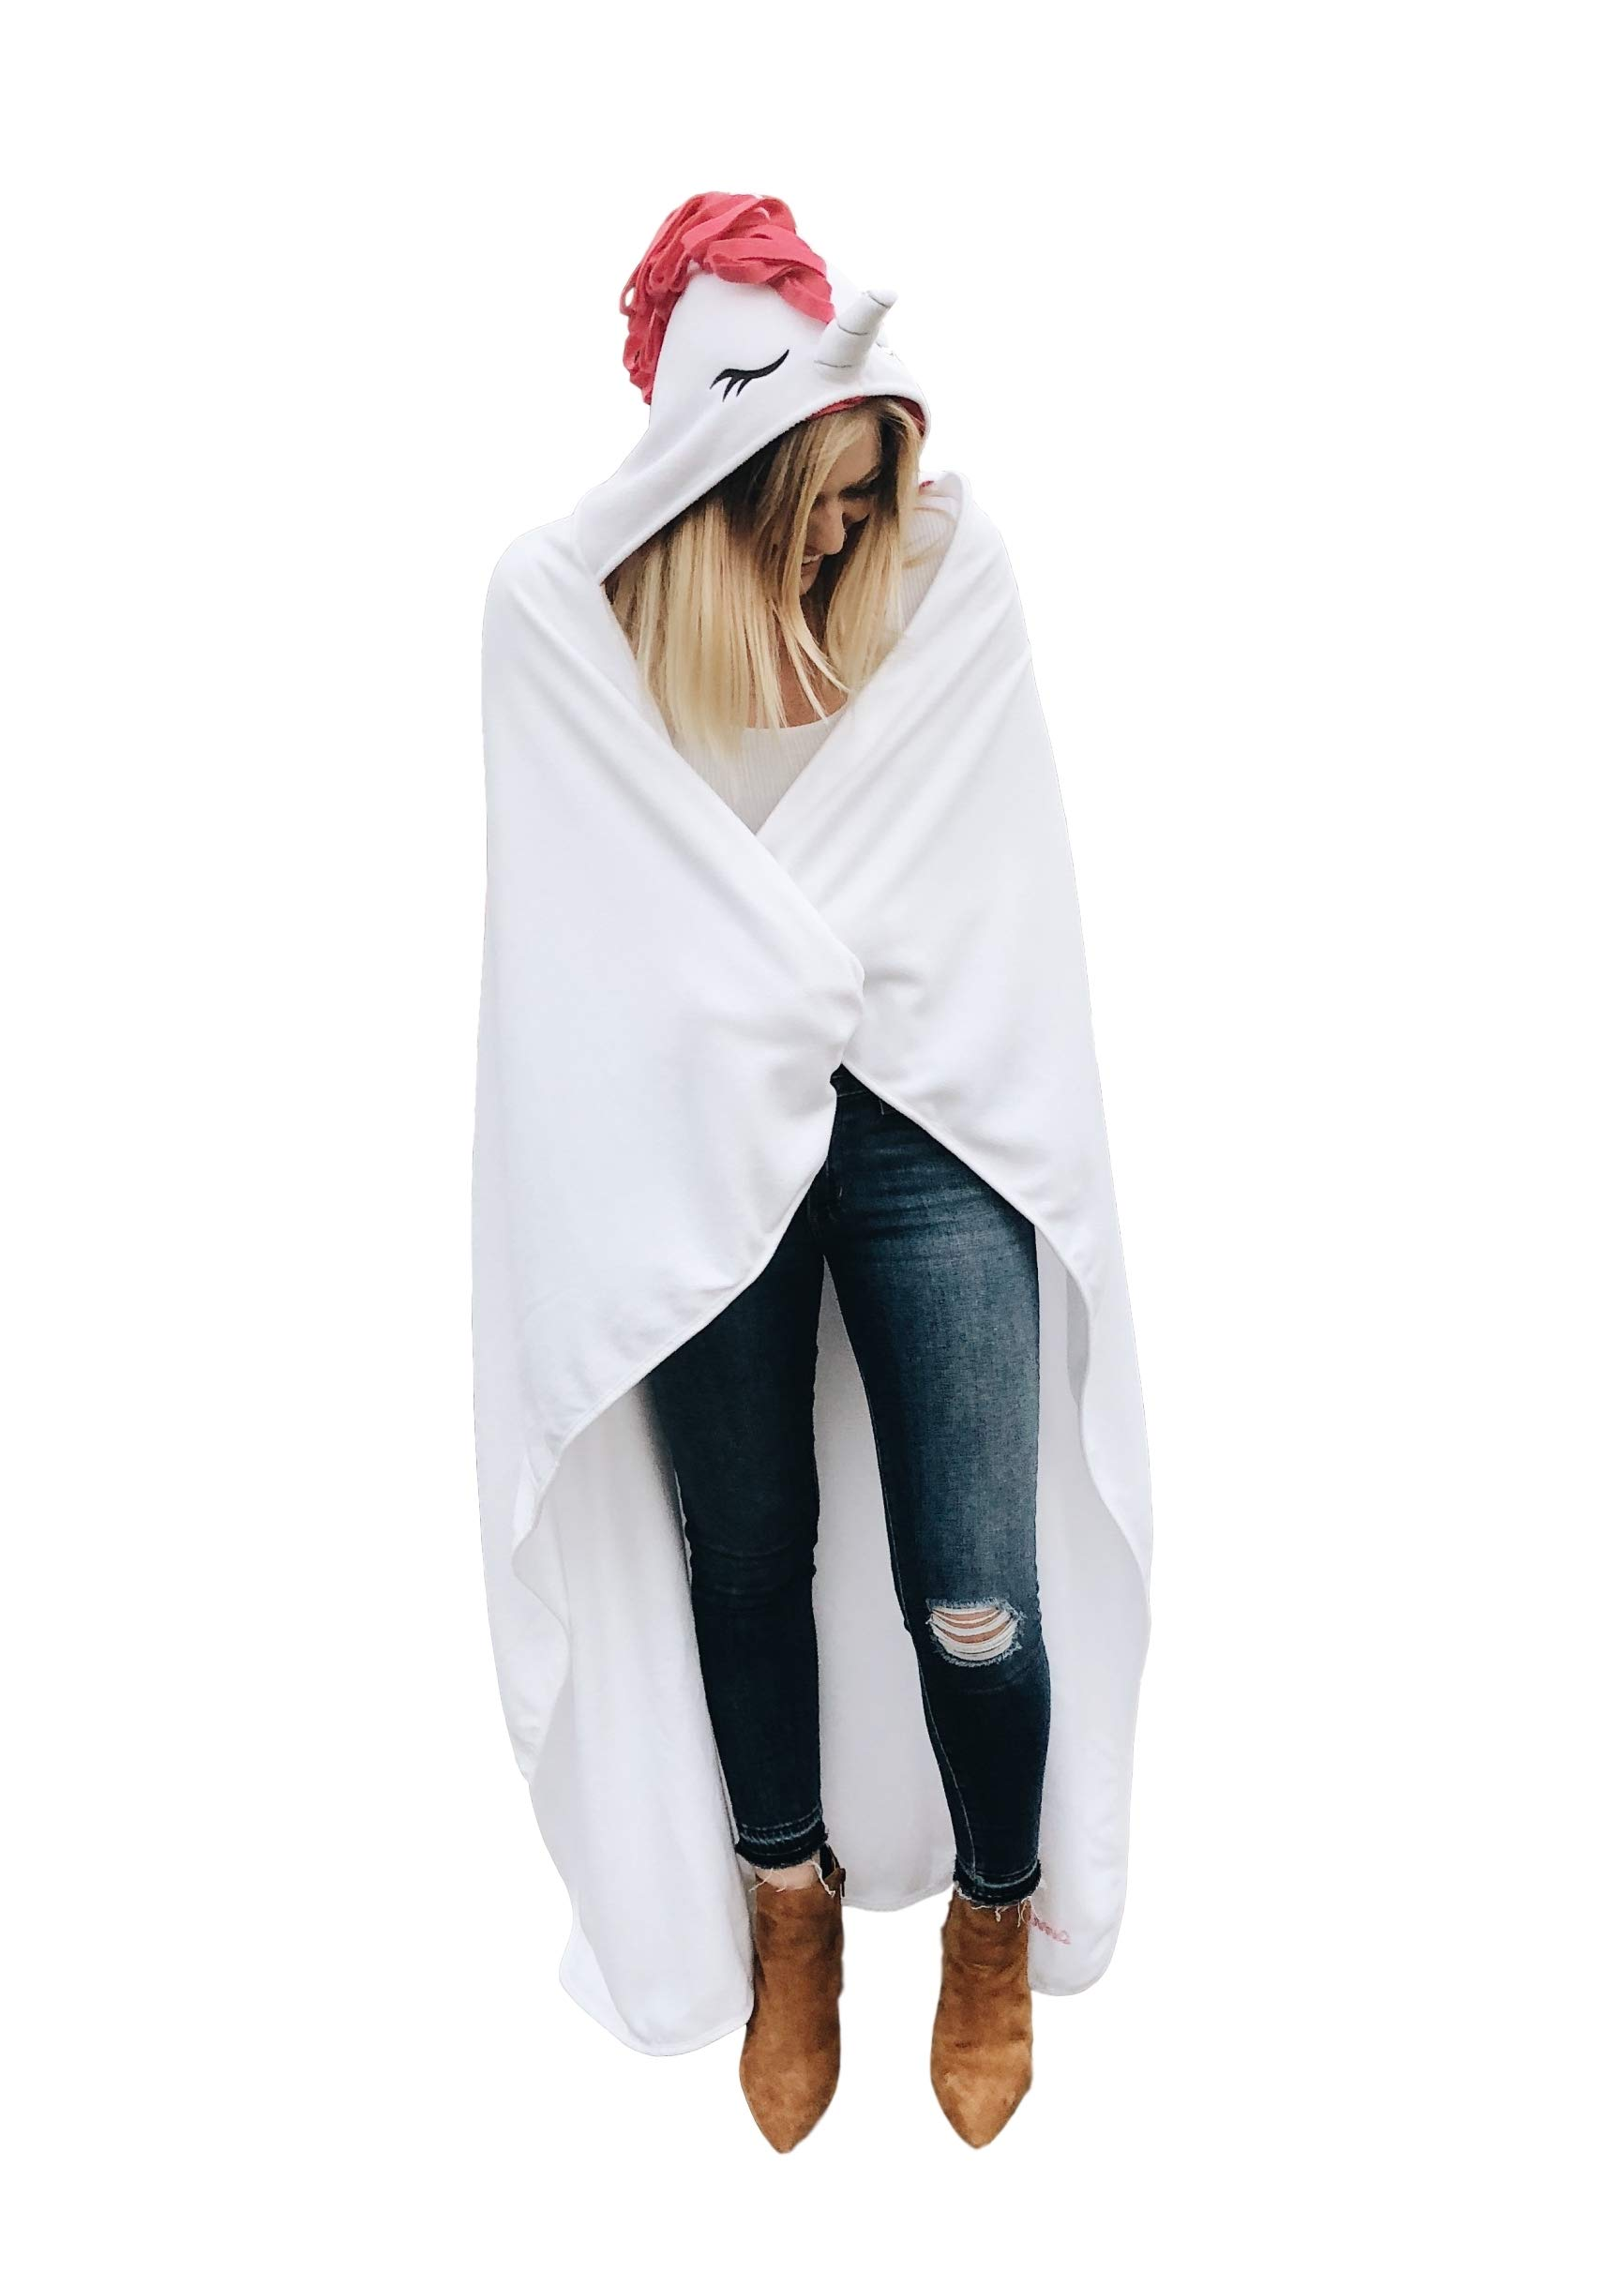 Sworn Unicorn Hooded Blanket | Large Size for Adults | Wearable Pink White Plush Throw Blanket Wrap | Cute, Warm, & Durable Cashmere Fleece Snuggie Hood | Perfect For Moms, Parents, & Teenagers of Age by Merhoff & Larkin